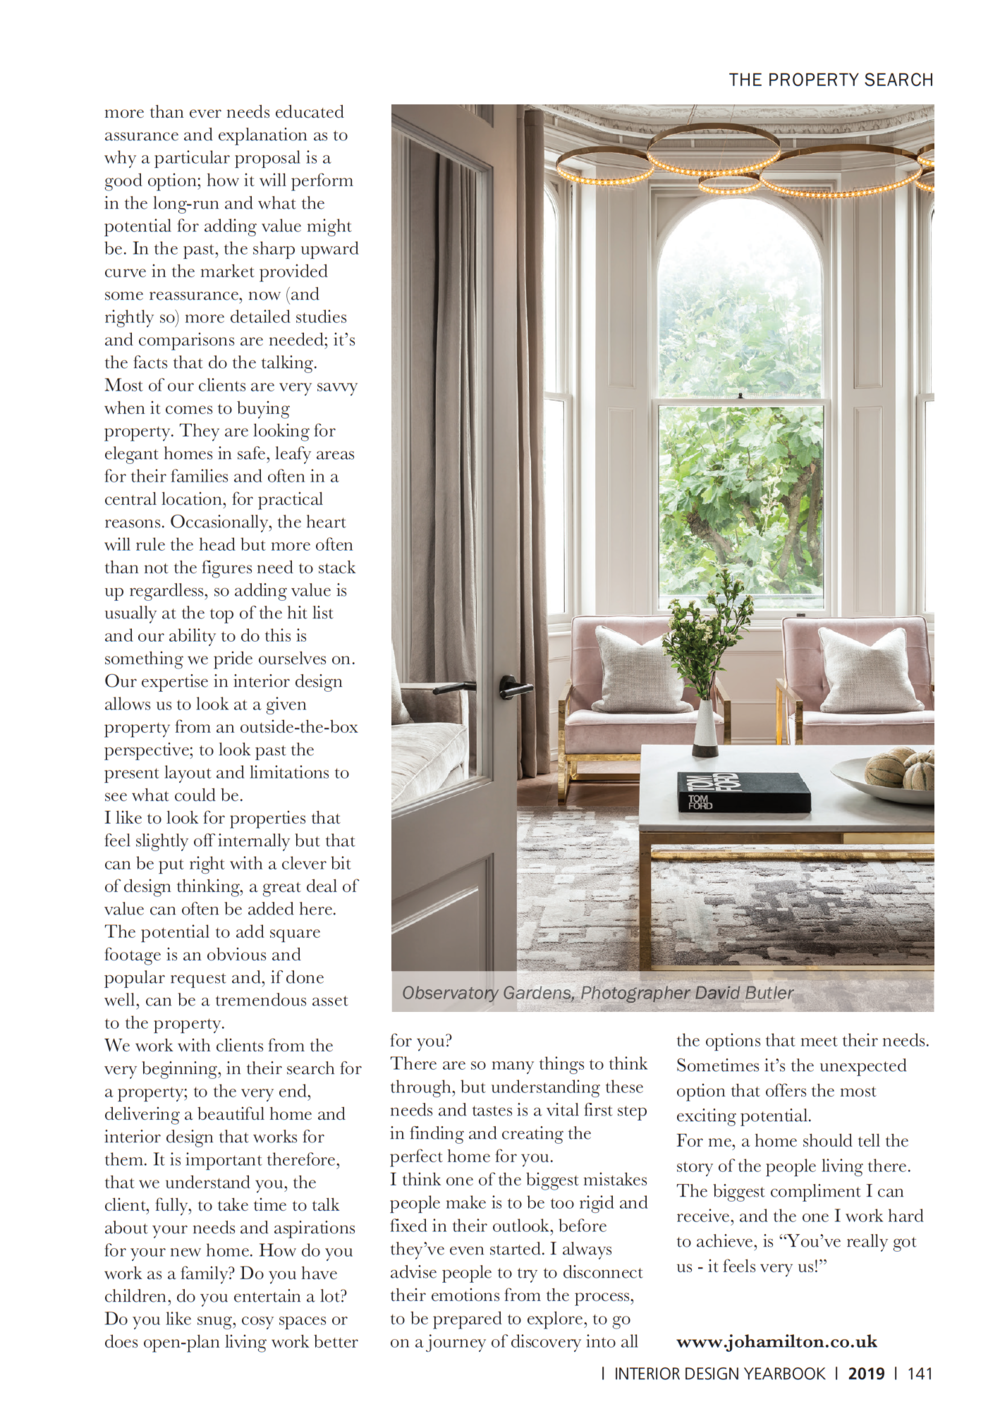 Interior Design Yearbook 2019 featuring luxury interior designer Jo Hamilton - consumer edition page 141